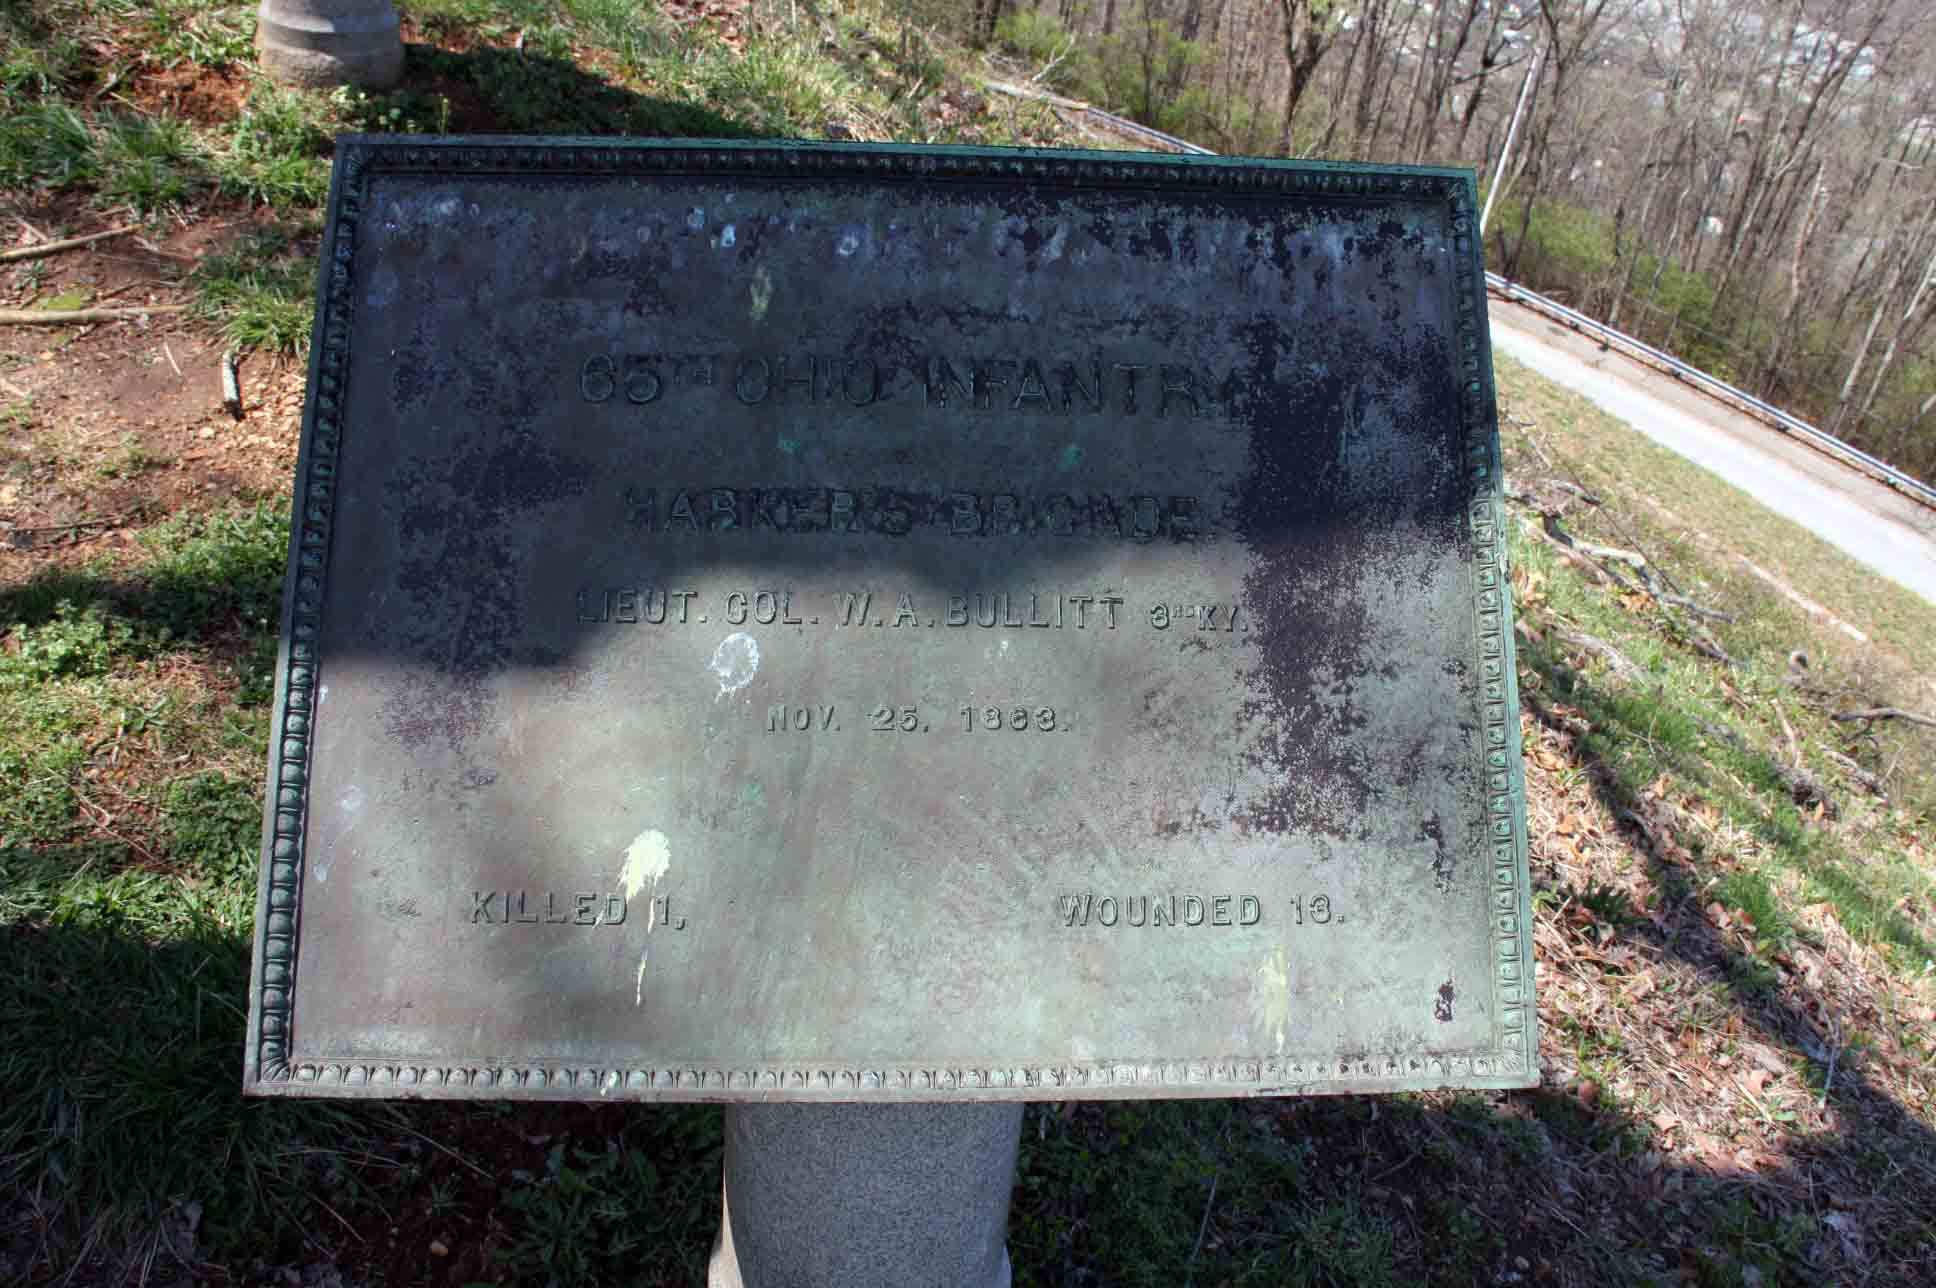 65th Ohio Infantry Regiment Tablet, click photo to enlarge.